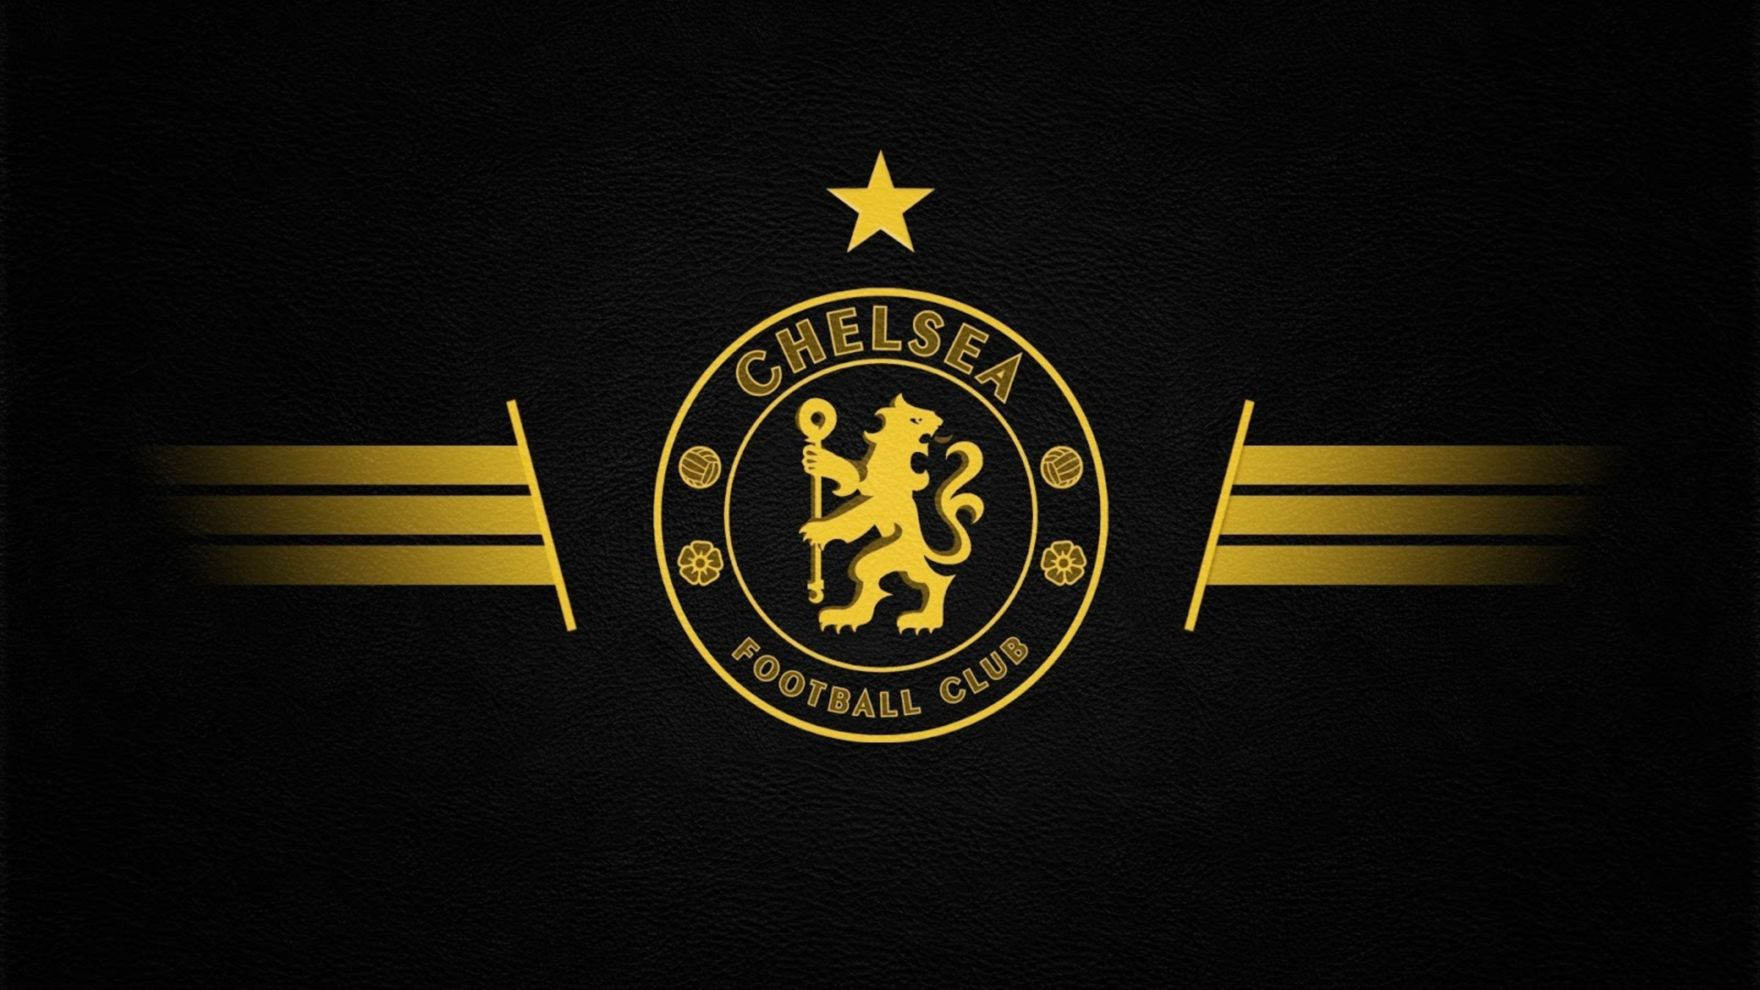 Download free HD Black Chelsea Logo HD 2015 Wallpaper, image